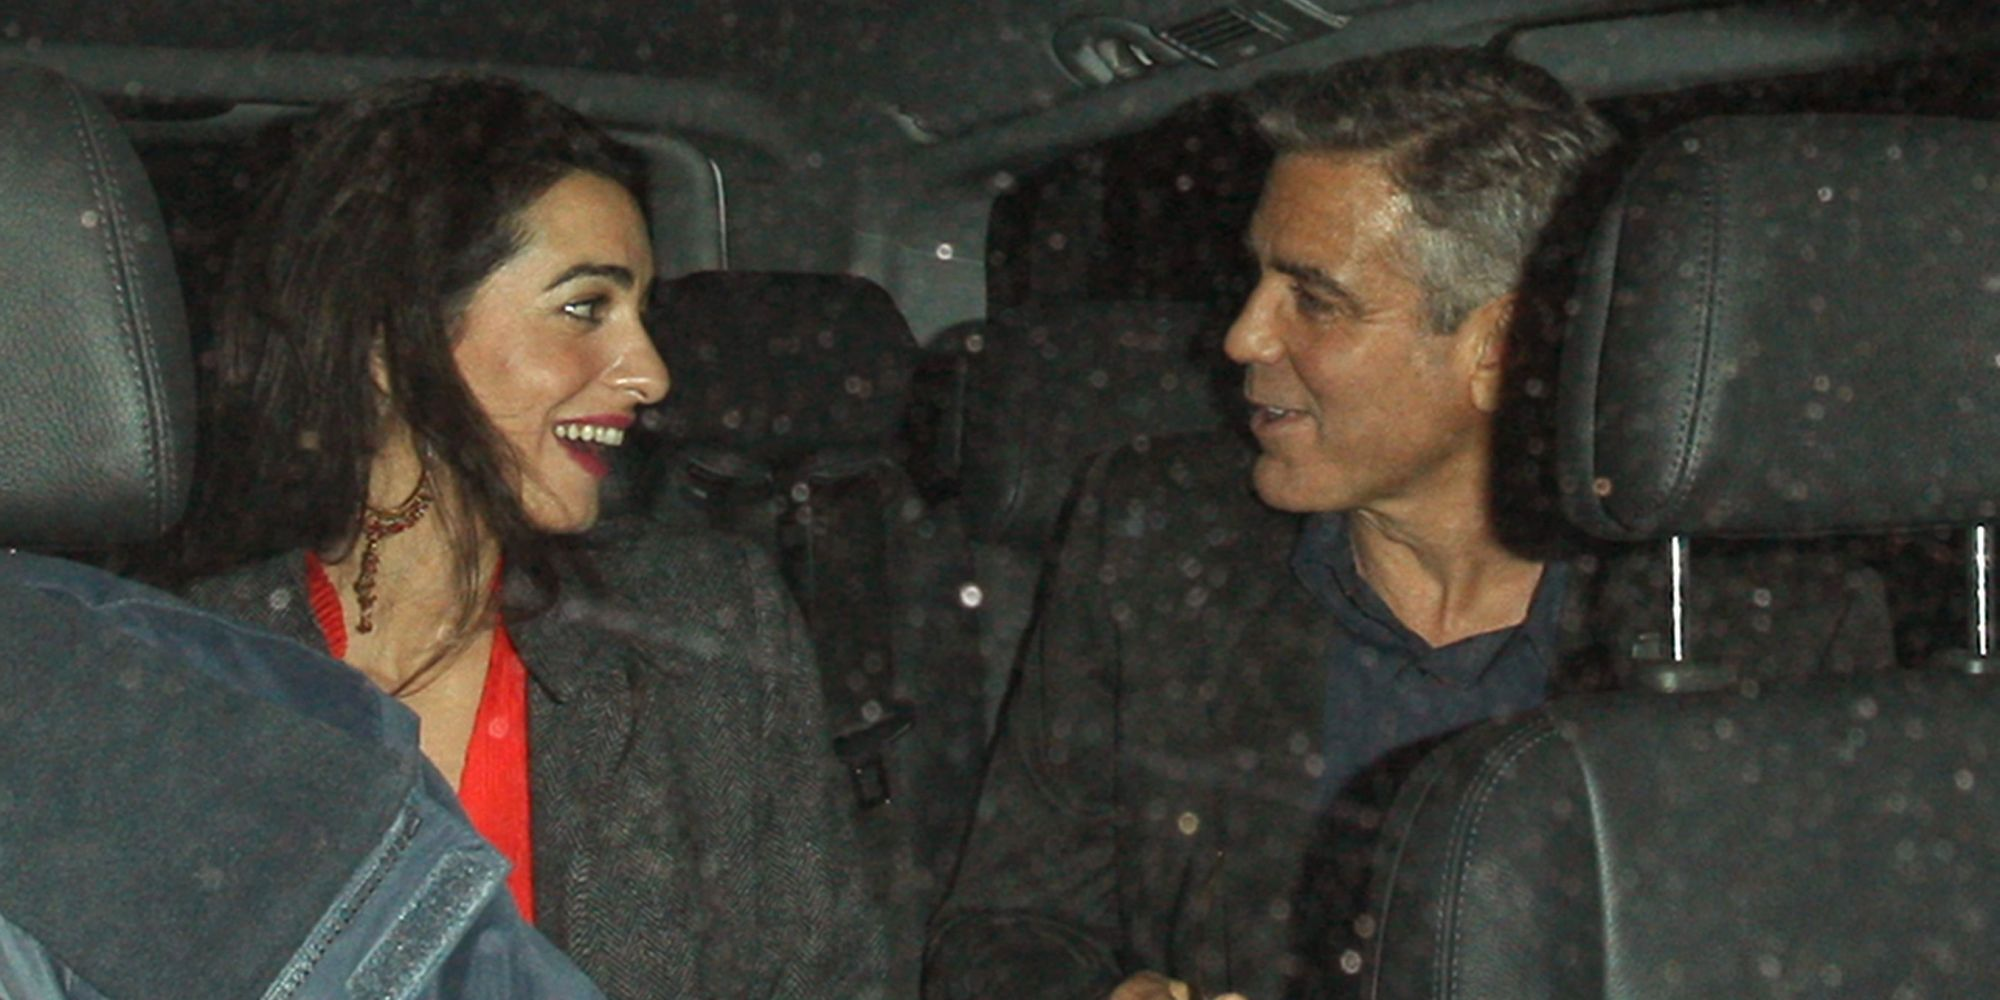 George Clooney Dating Amal Alamuddin? Actor Spotted With ...